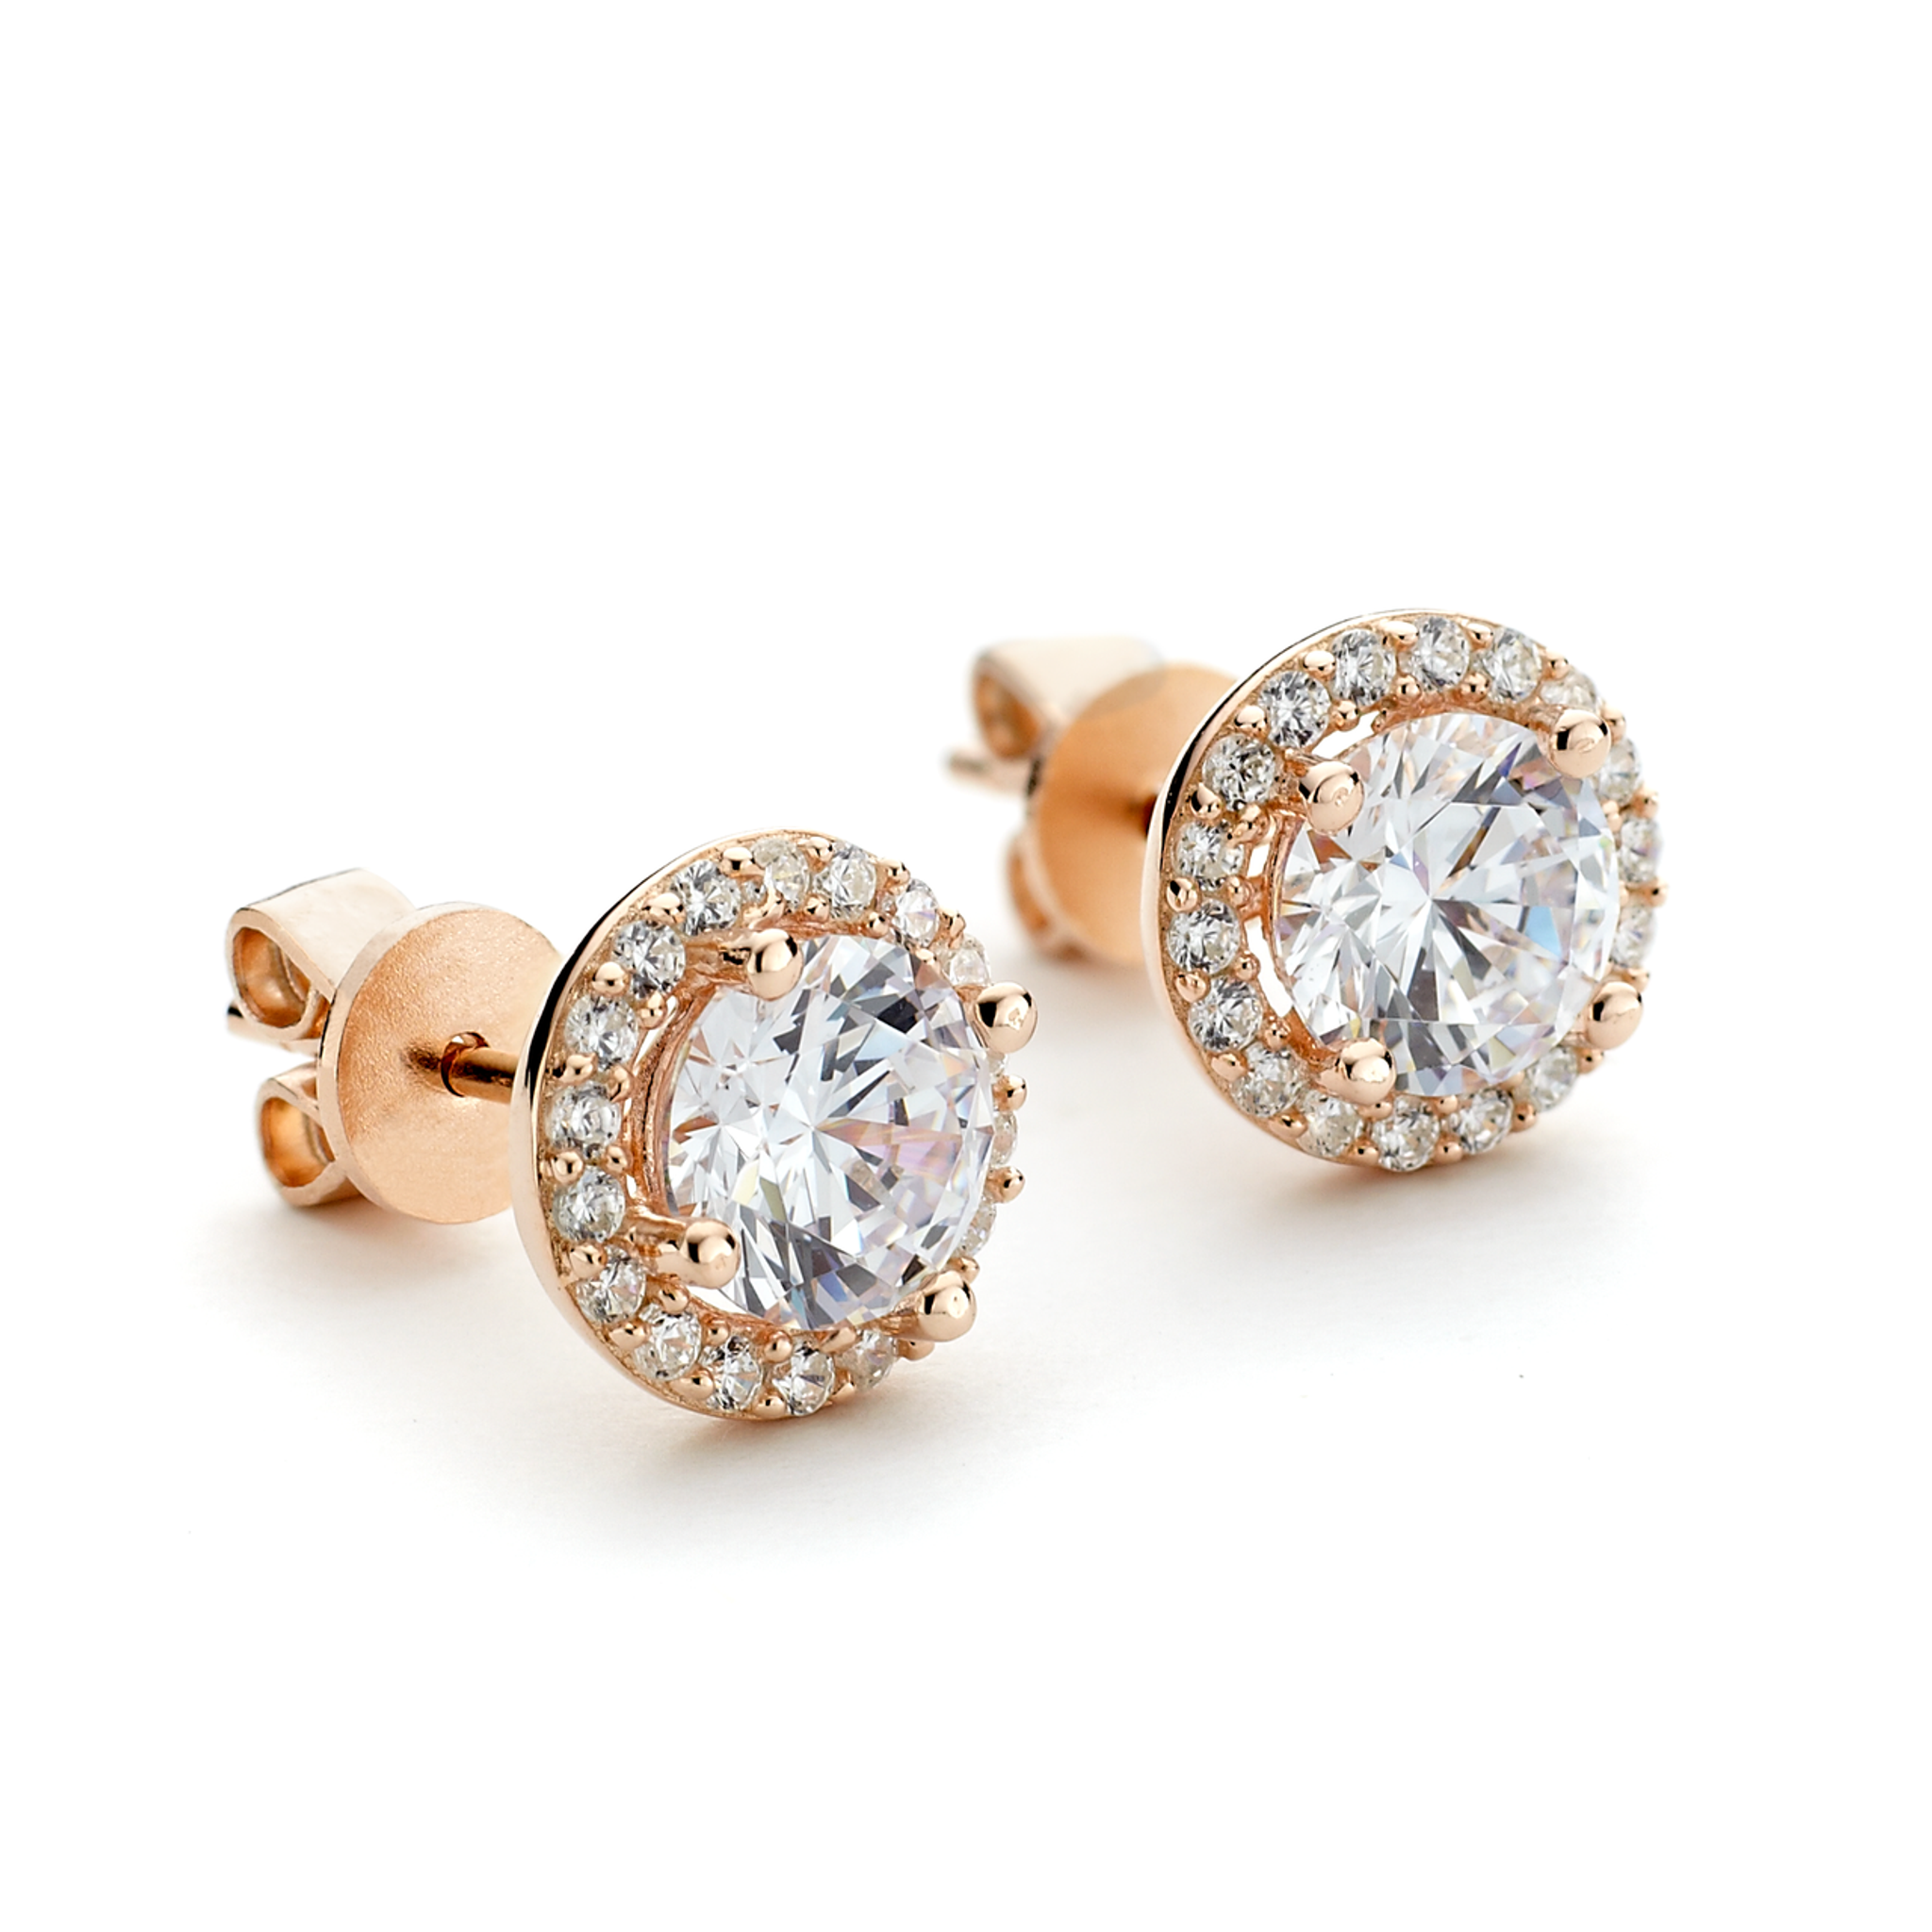 d6b8cfd74 Rose gold overlay round cz stud earrings with halo in sterling silver from  One by One